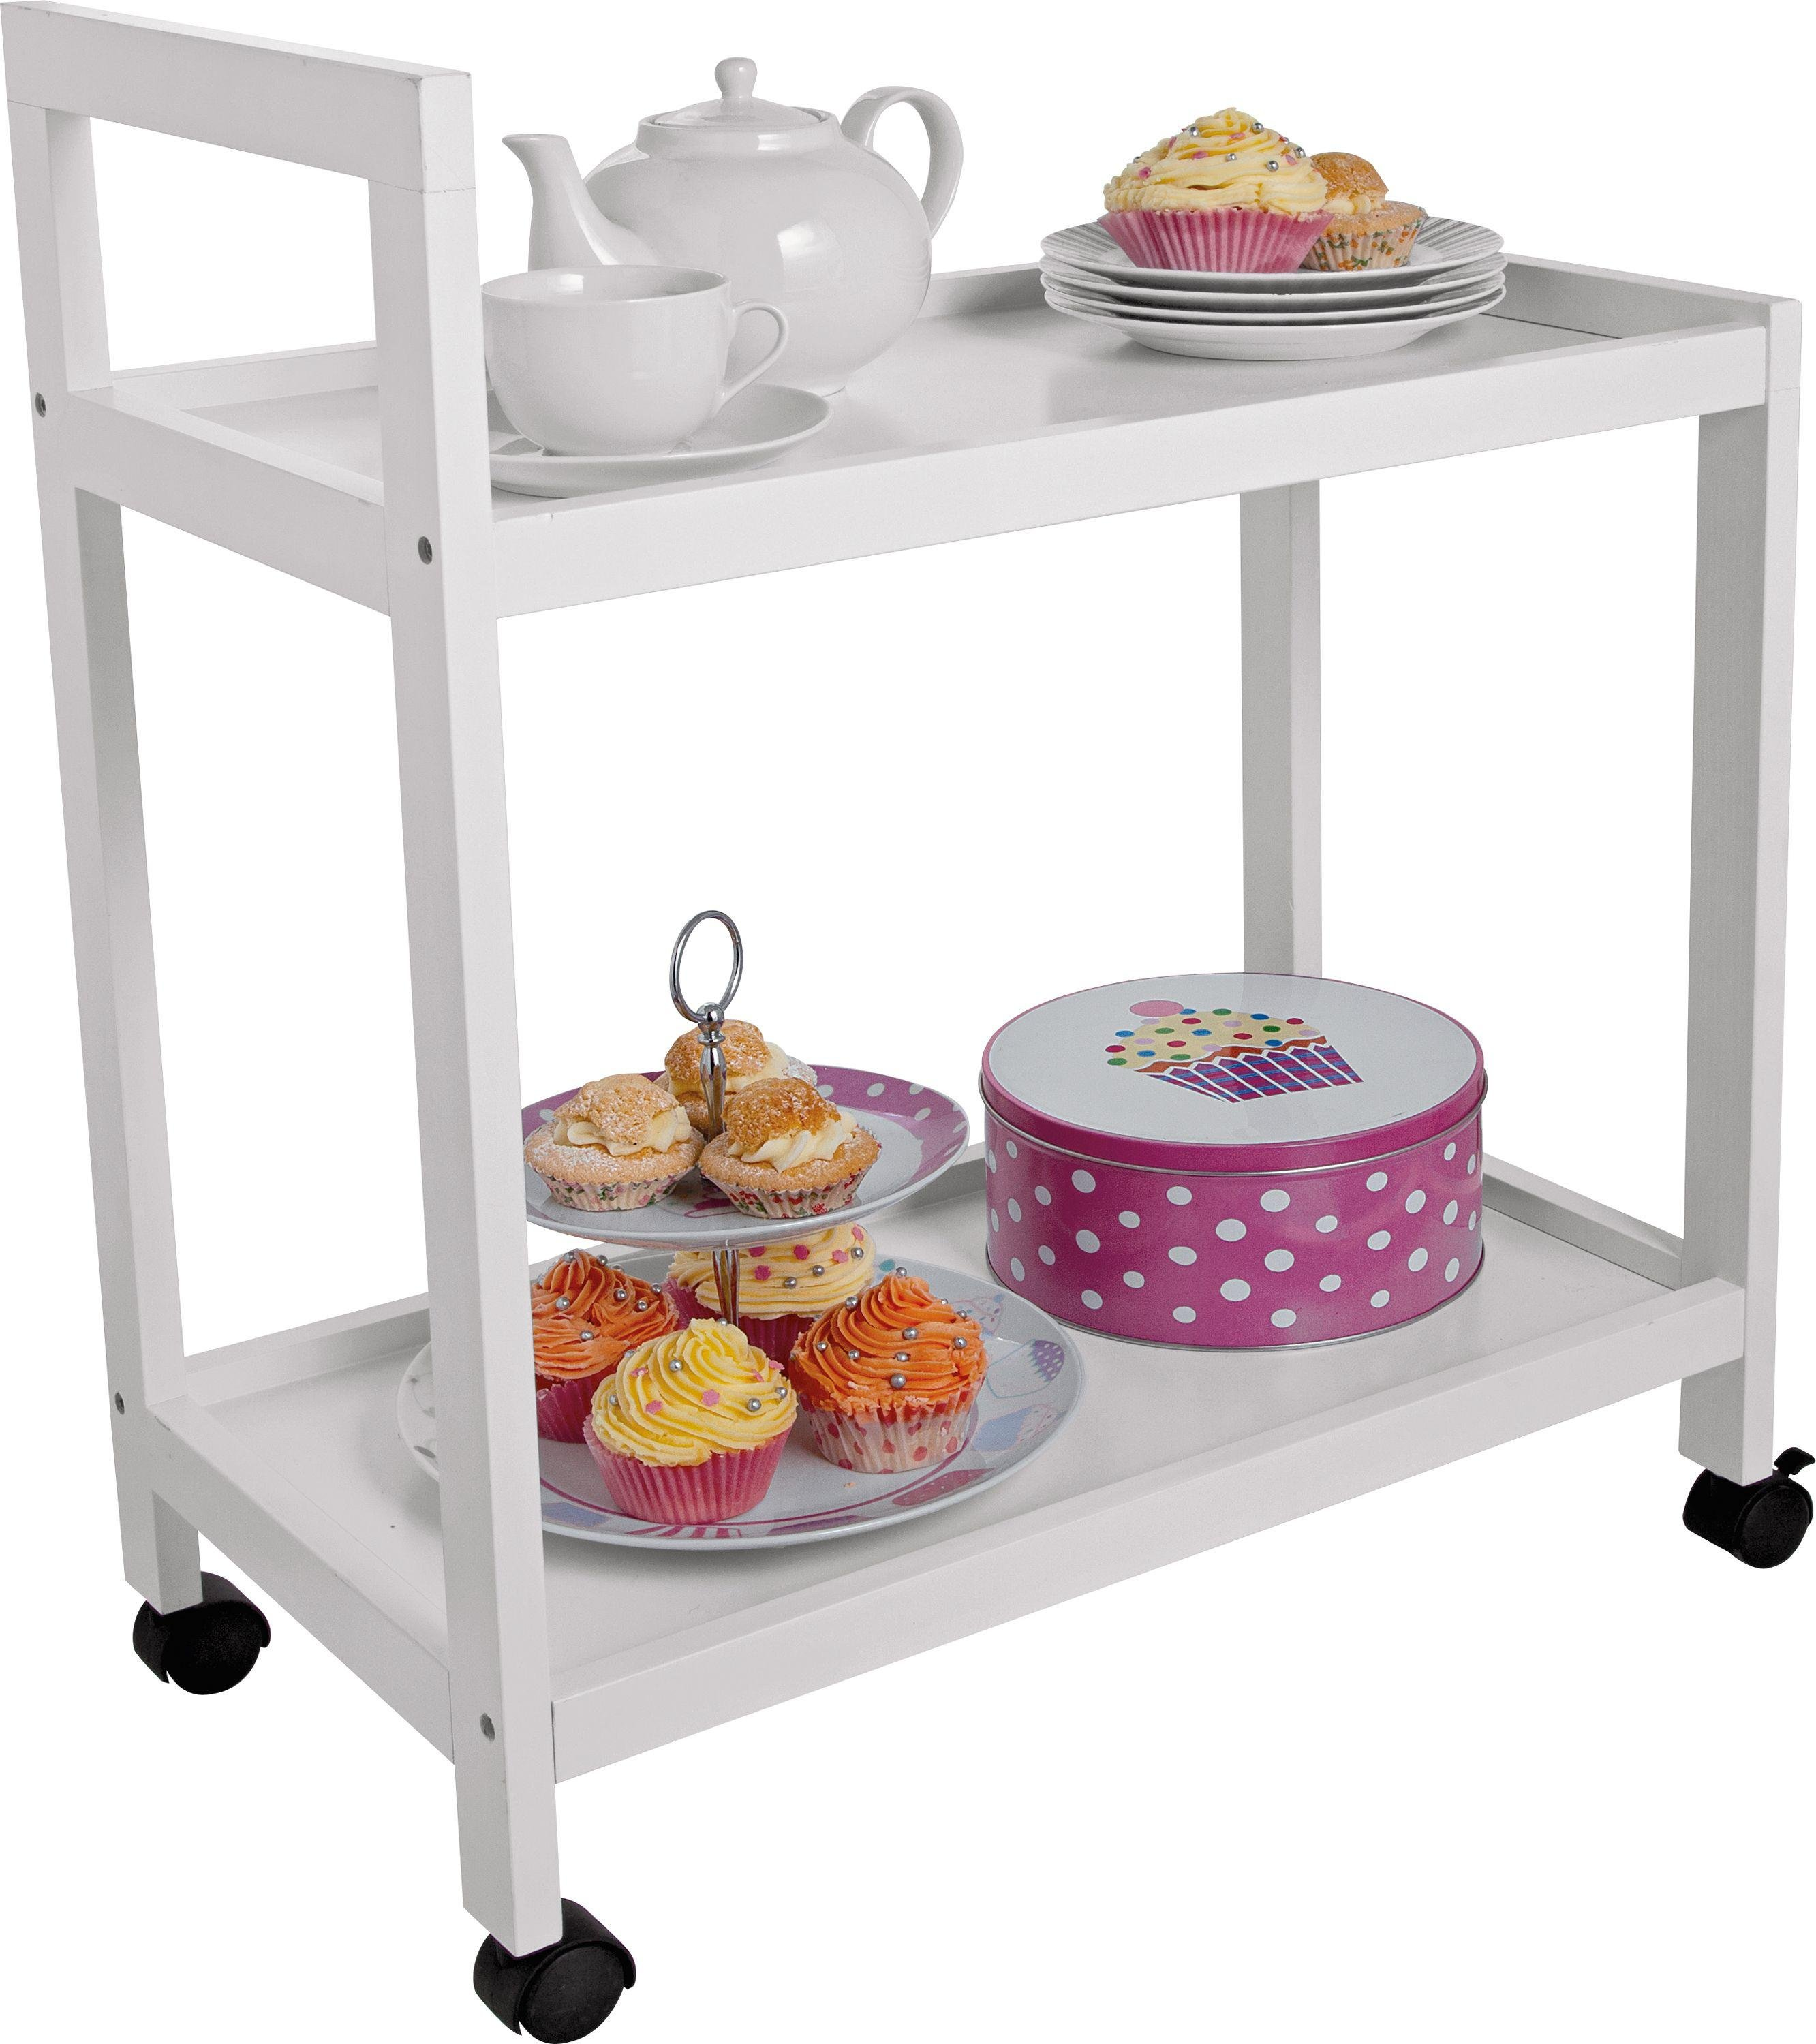 Image of HOME - White Tea Trolley